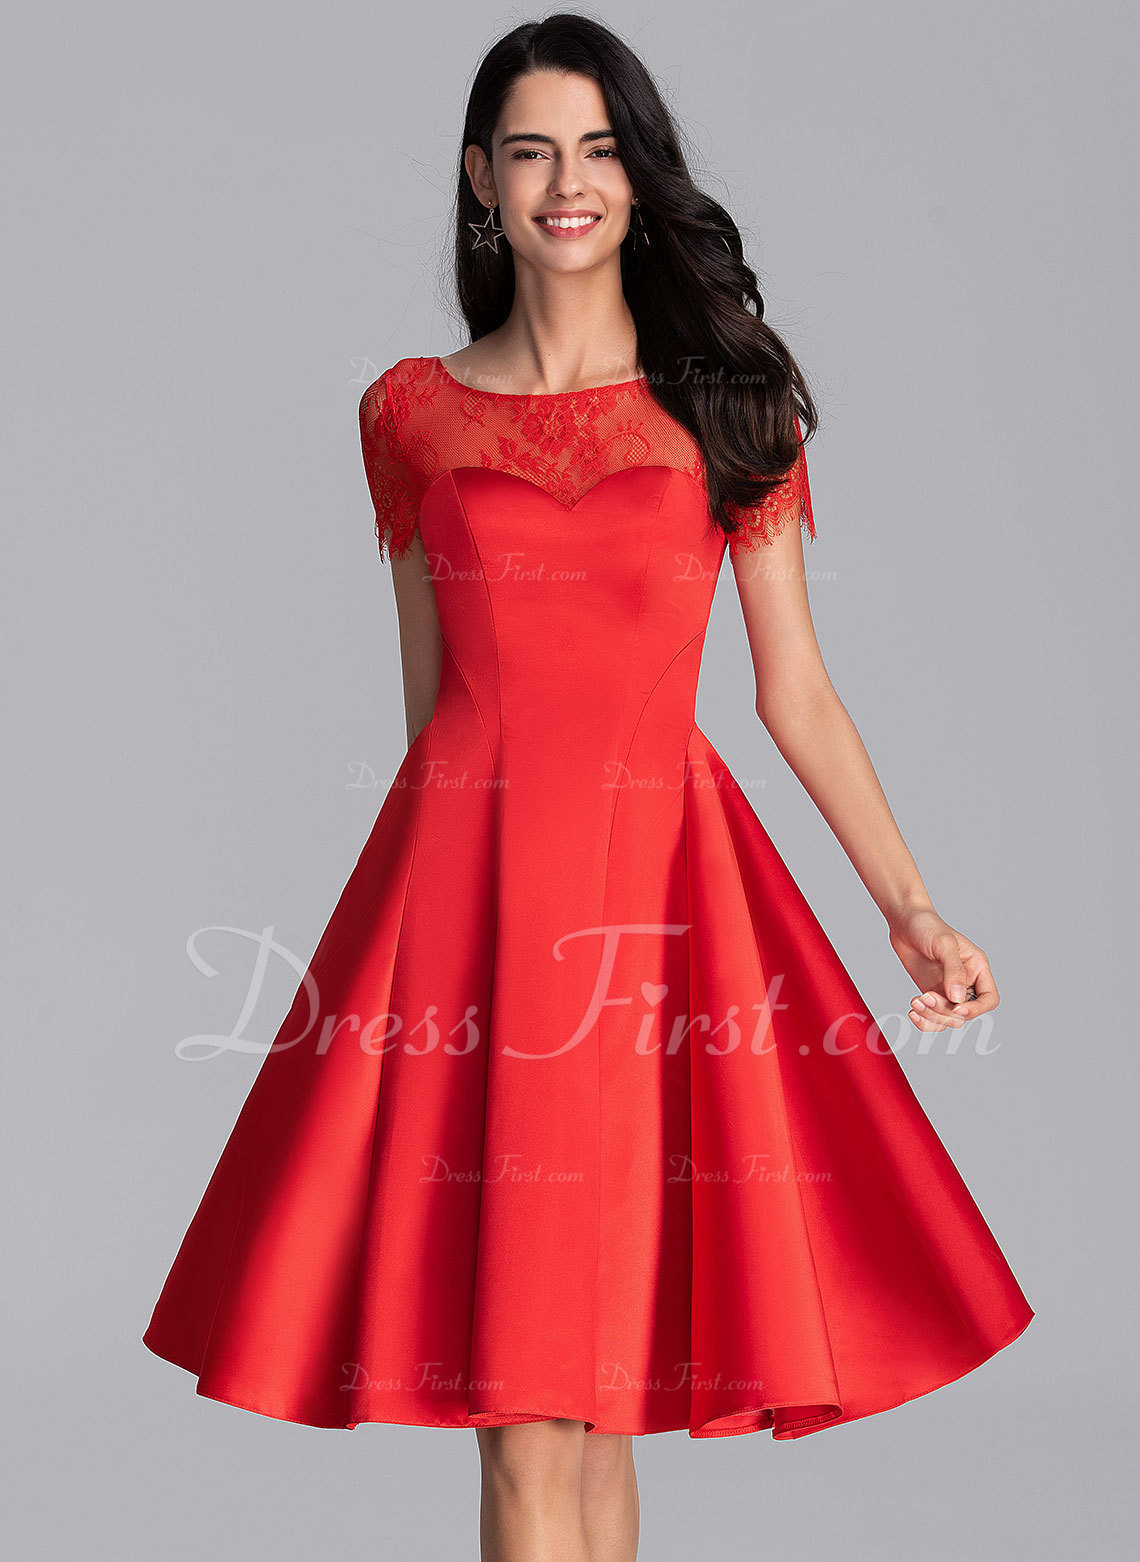 A-Line Scoop Neck Knee-Length Satin Homecoming Dress